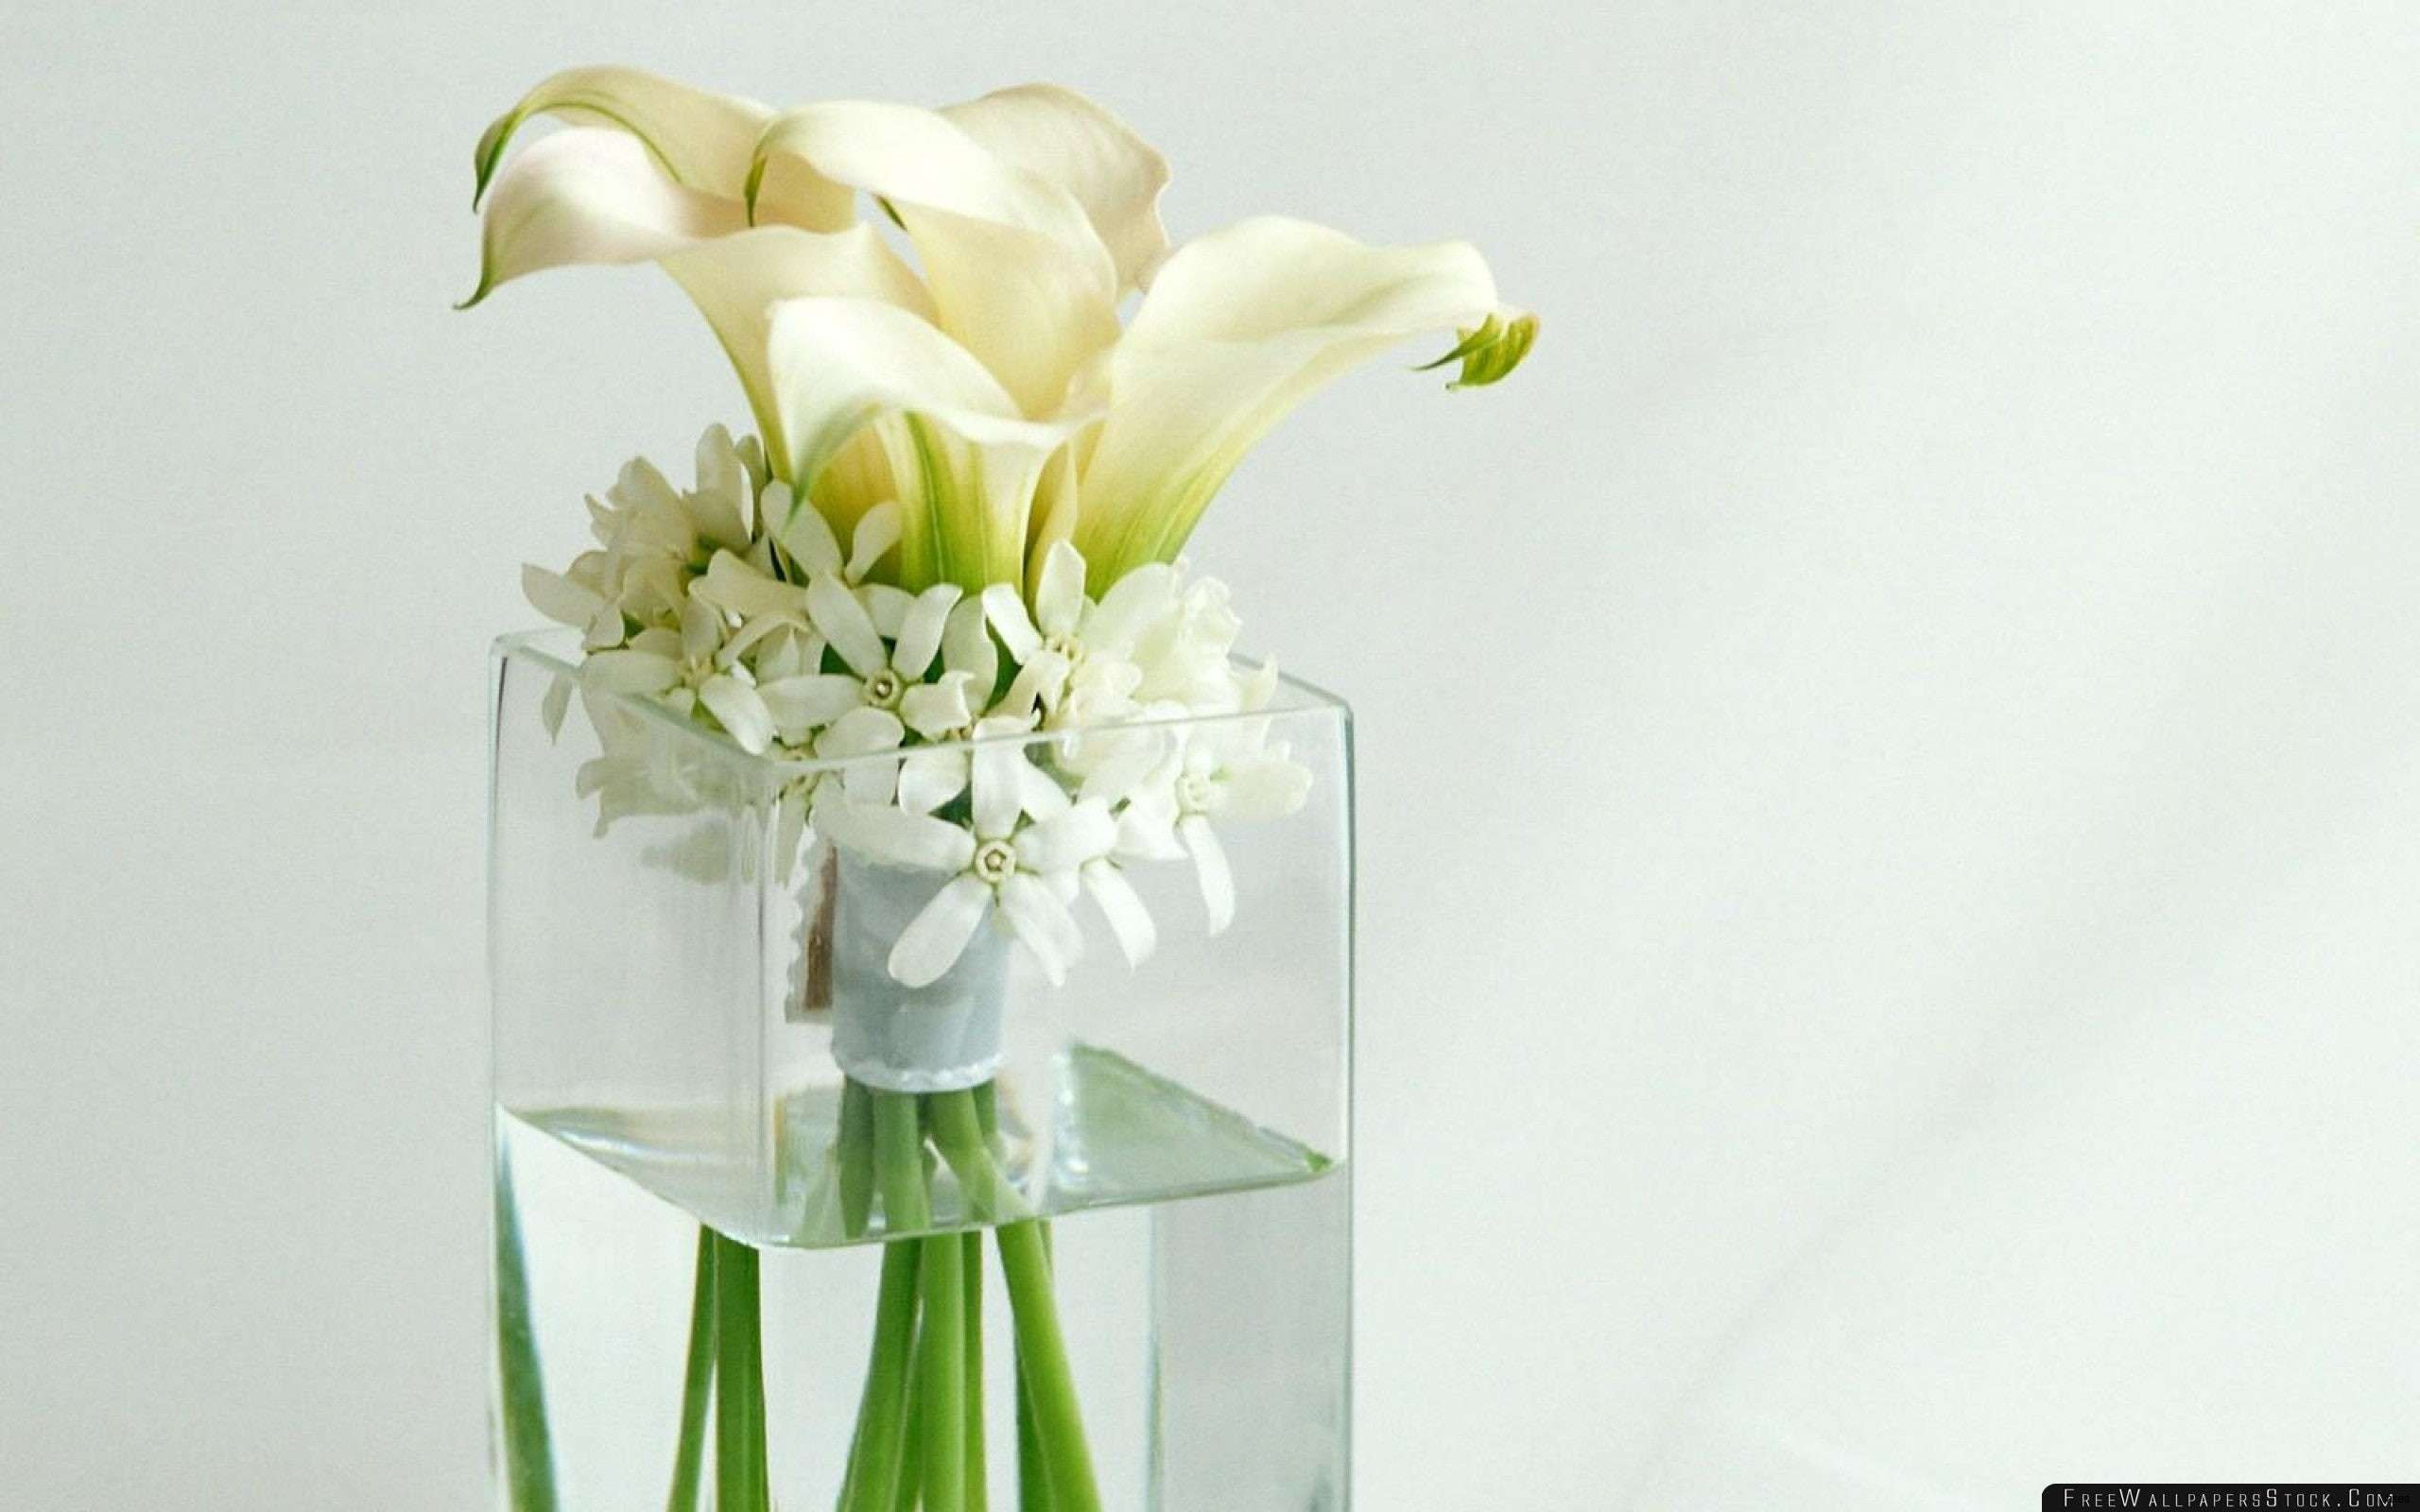 Tall Vase Centerpiece Ideas Vases Flowers In Water 0d Artificial Design Flowers for Centerpieces